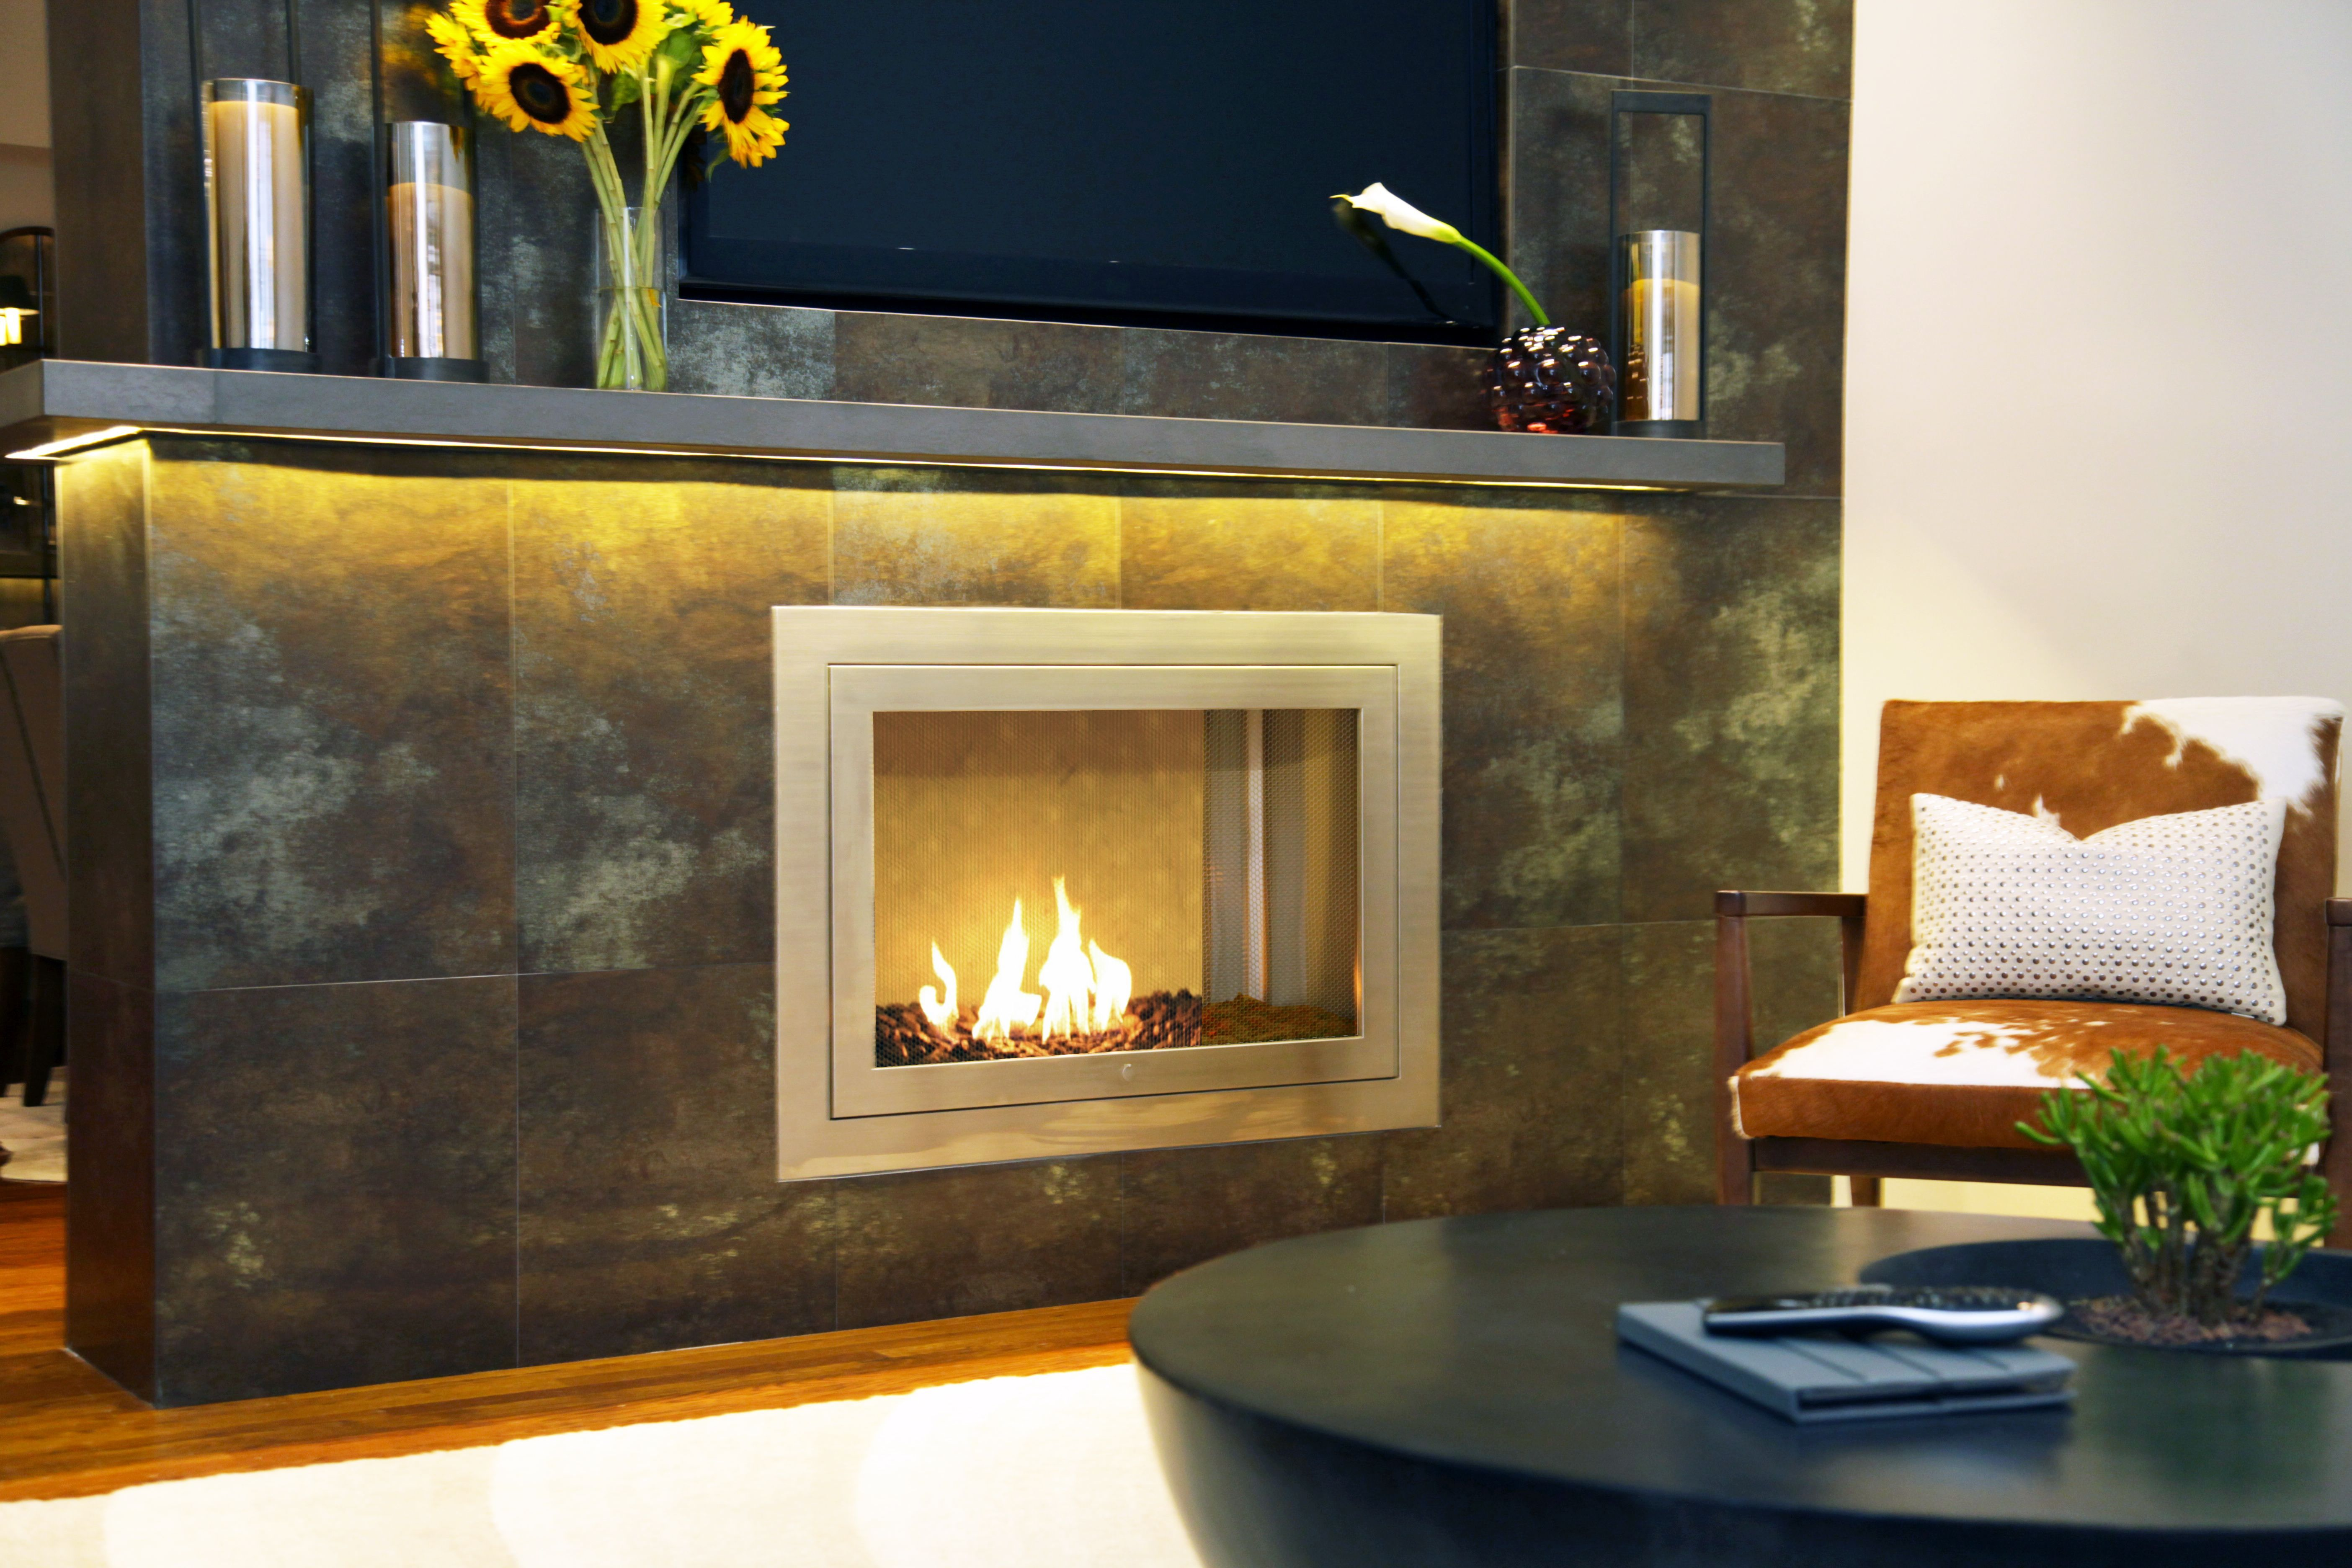 Hearthcabinet Ventless Fireplaces Modern Traditional Ventless